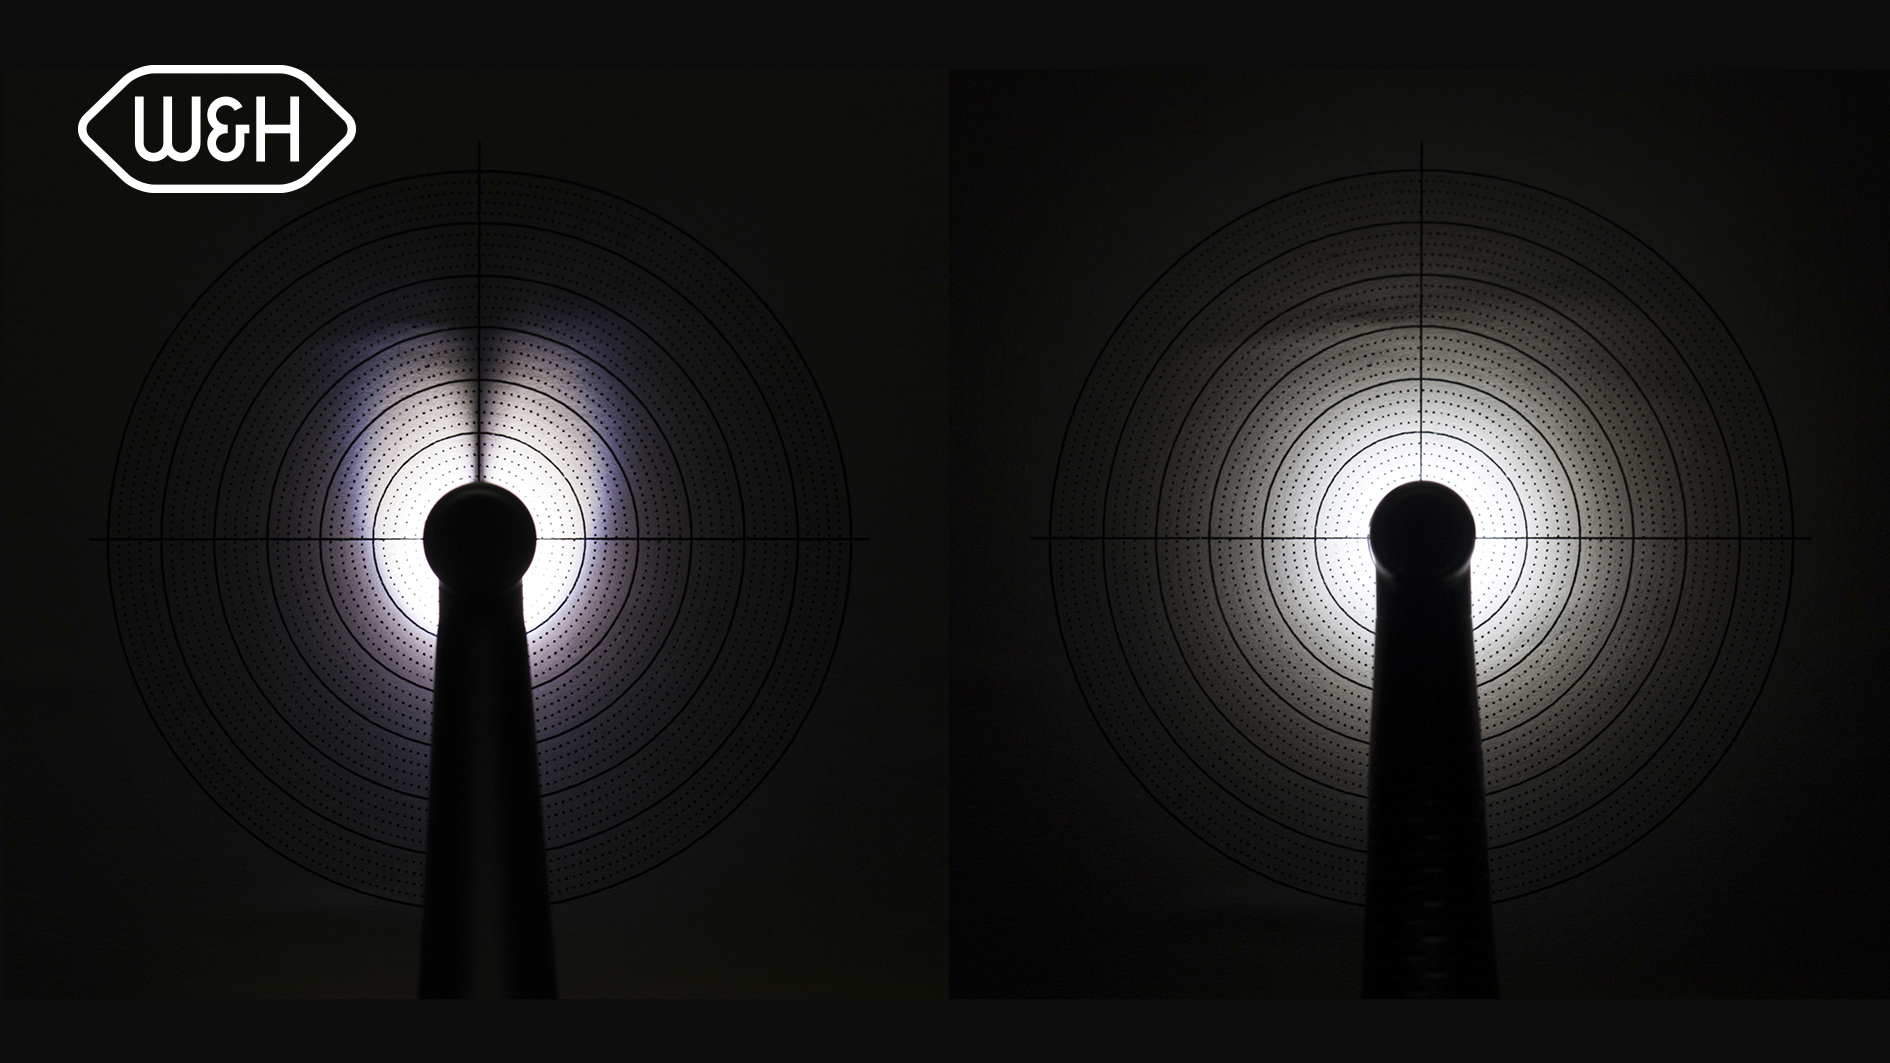 The superiority of the W&H LED concept: Compared with the competing instrument (left), the Synea Vision turbine with 5x ring LED+ (right) offers a 100% shadow-free view of the preparation site.